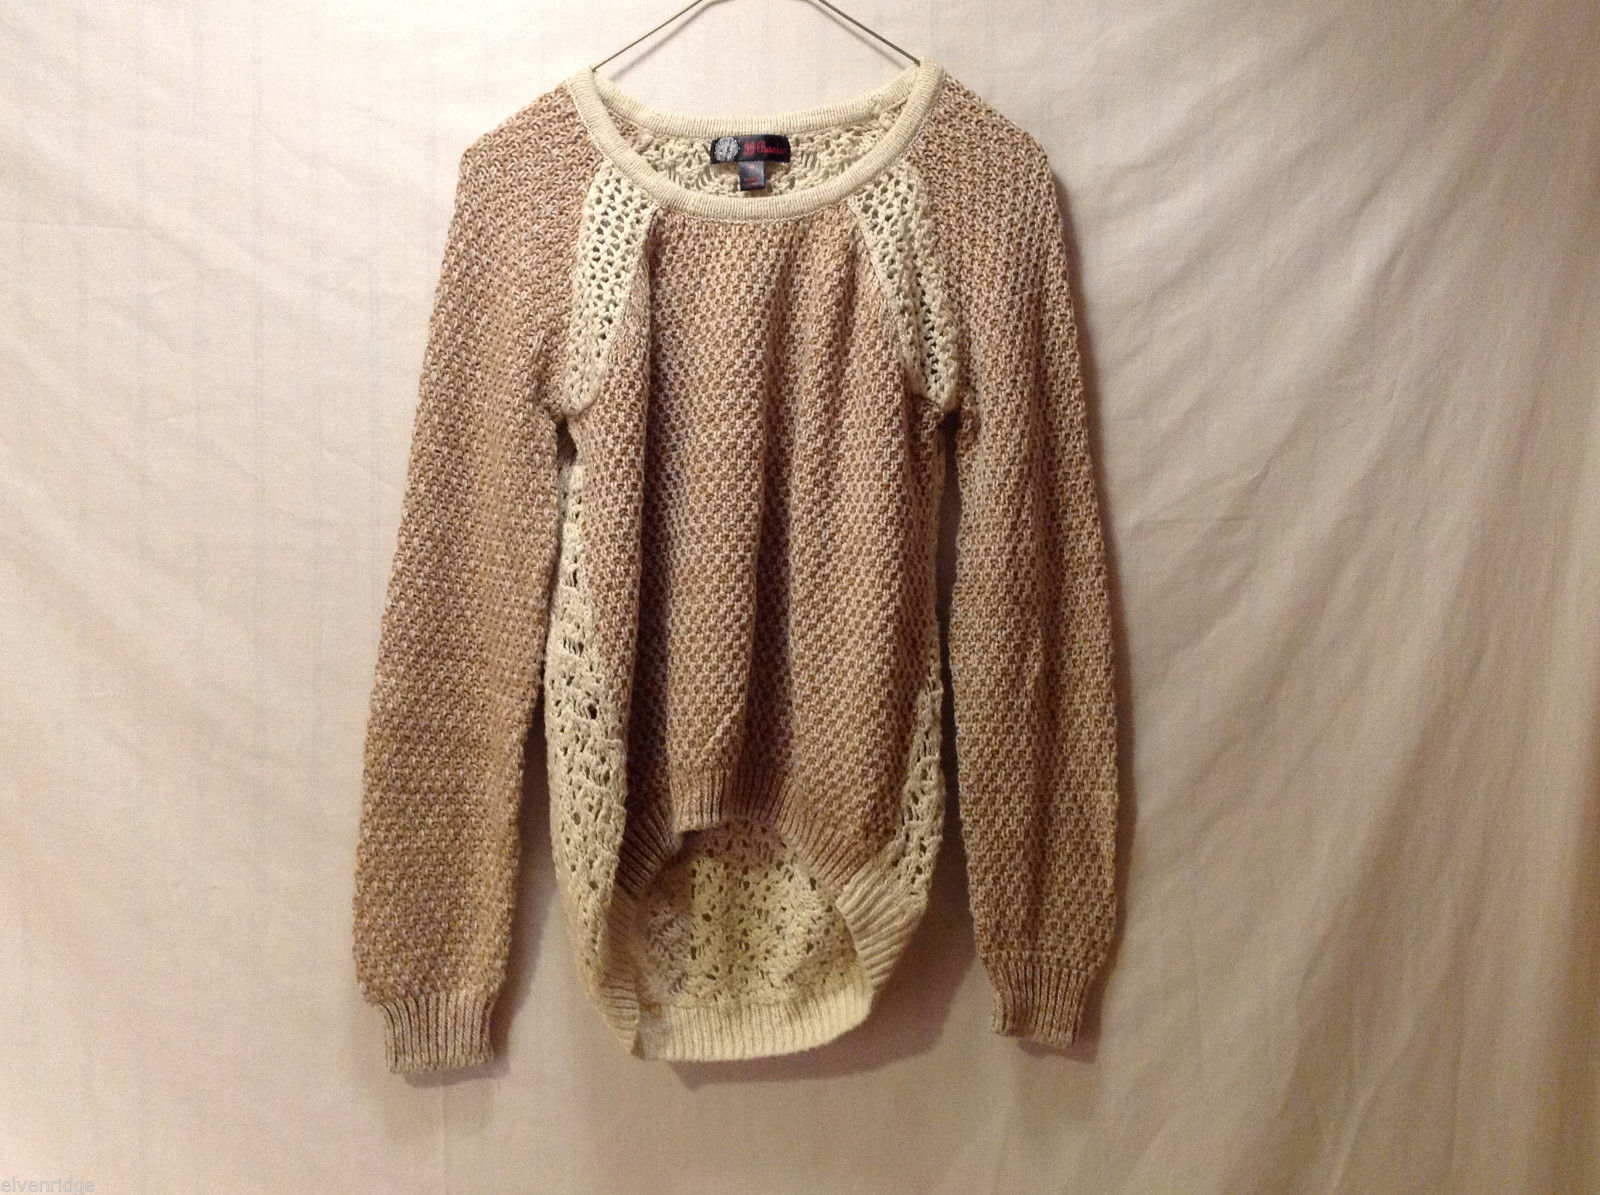 J.J. Basics Women's Size M High-Low Sweater Top Crochet Open-Knit Brown & Cream